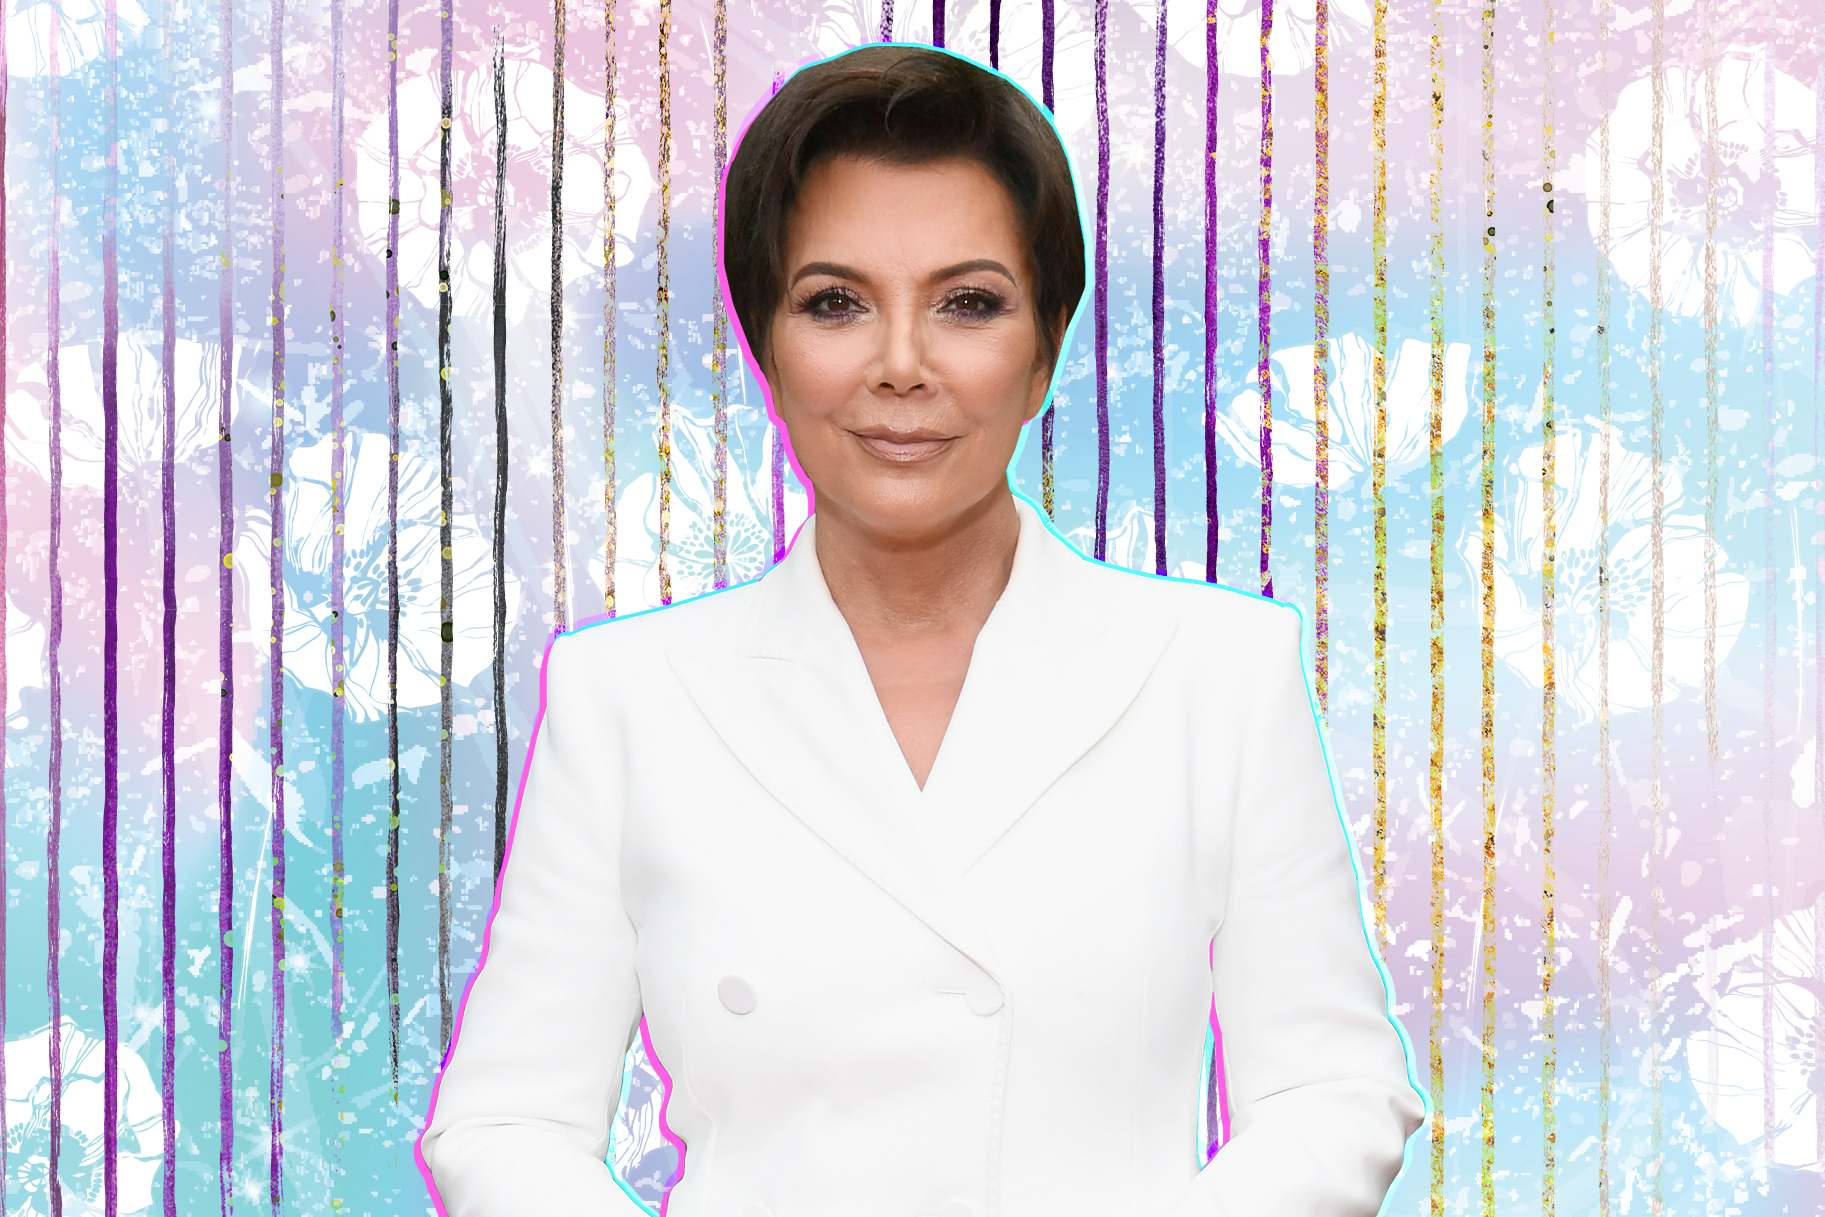 Kris Jenner Just Gave Us All a Look at Her Never-Before-Seen Home... and It's Stunning